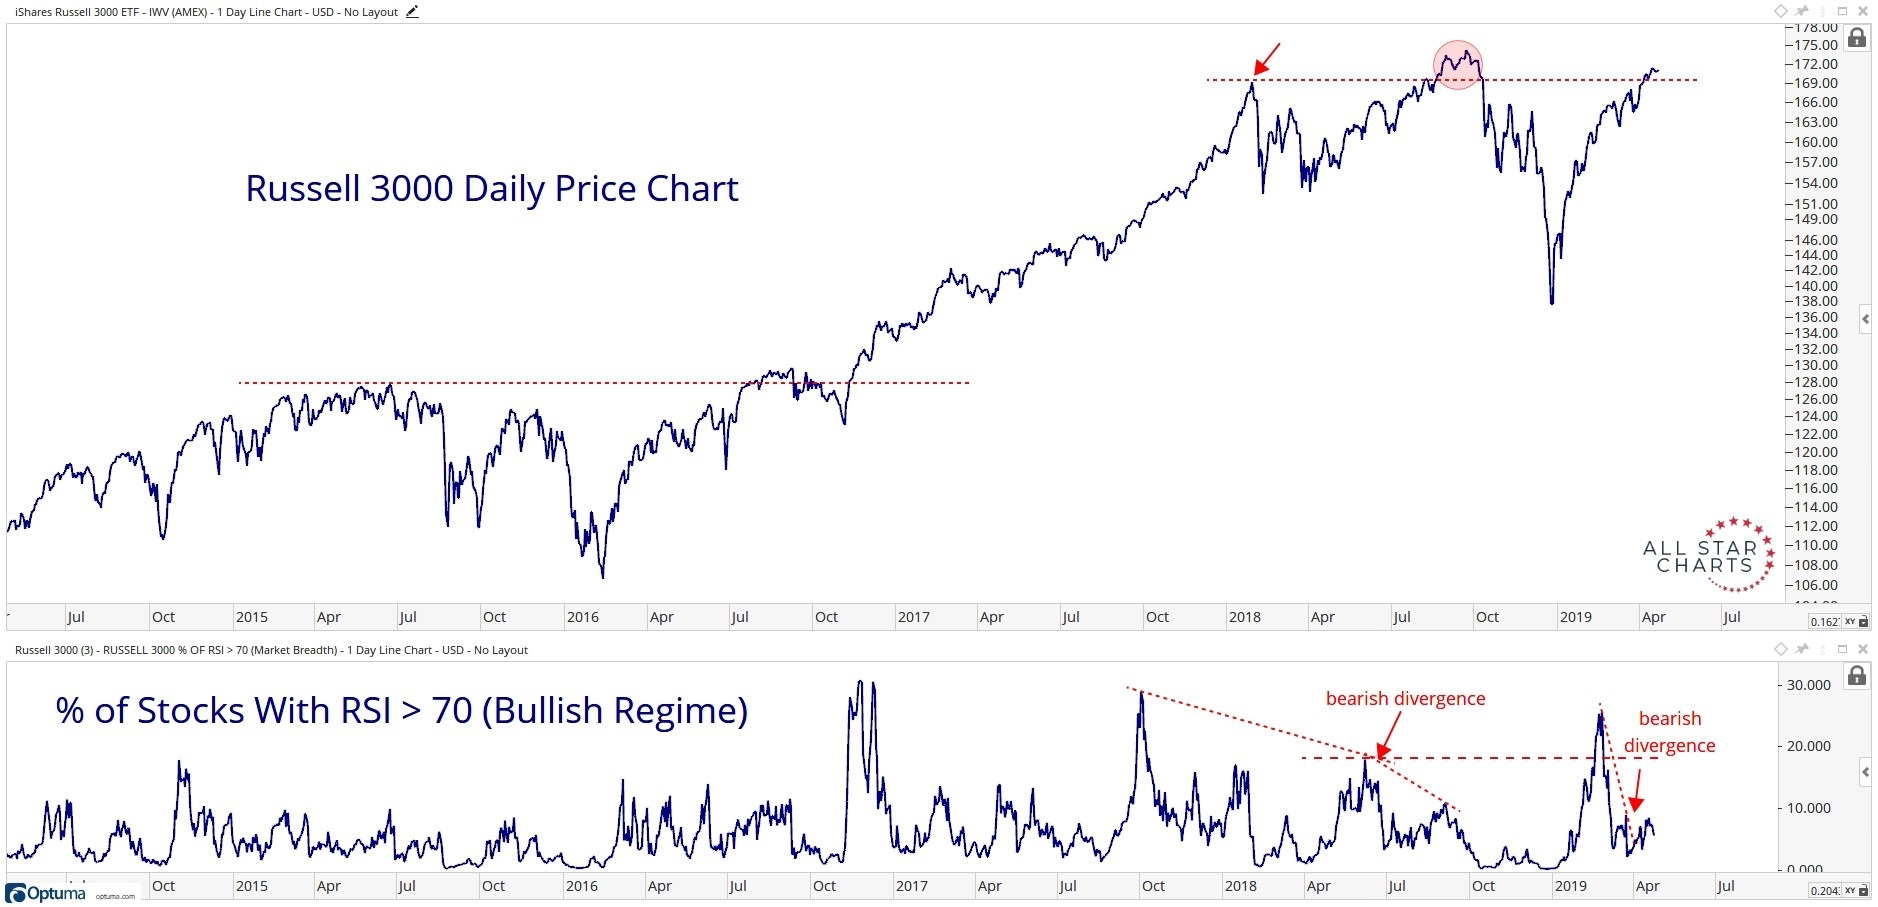 Five-year history of the Russell 3000 Index.